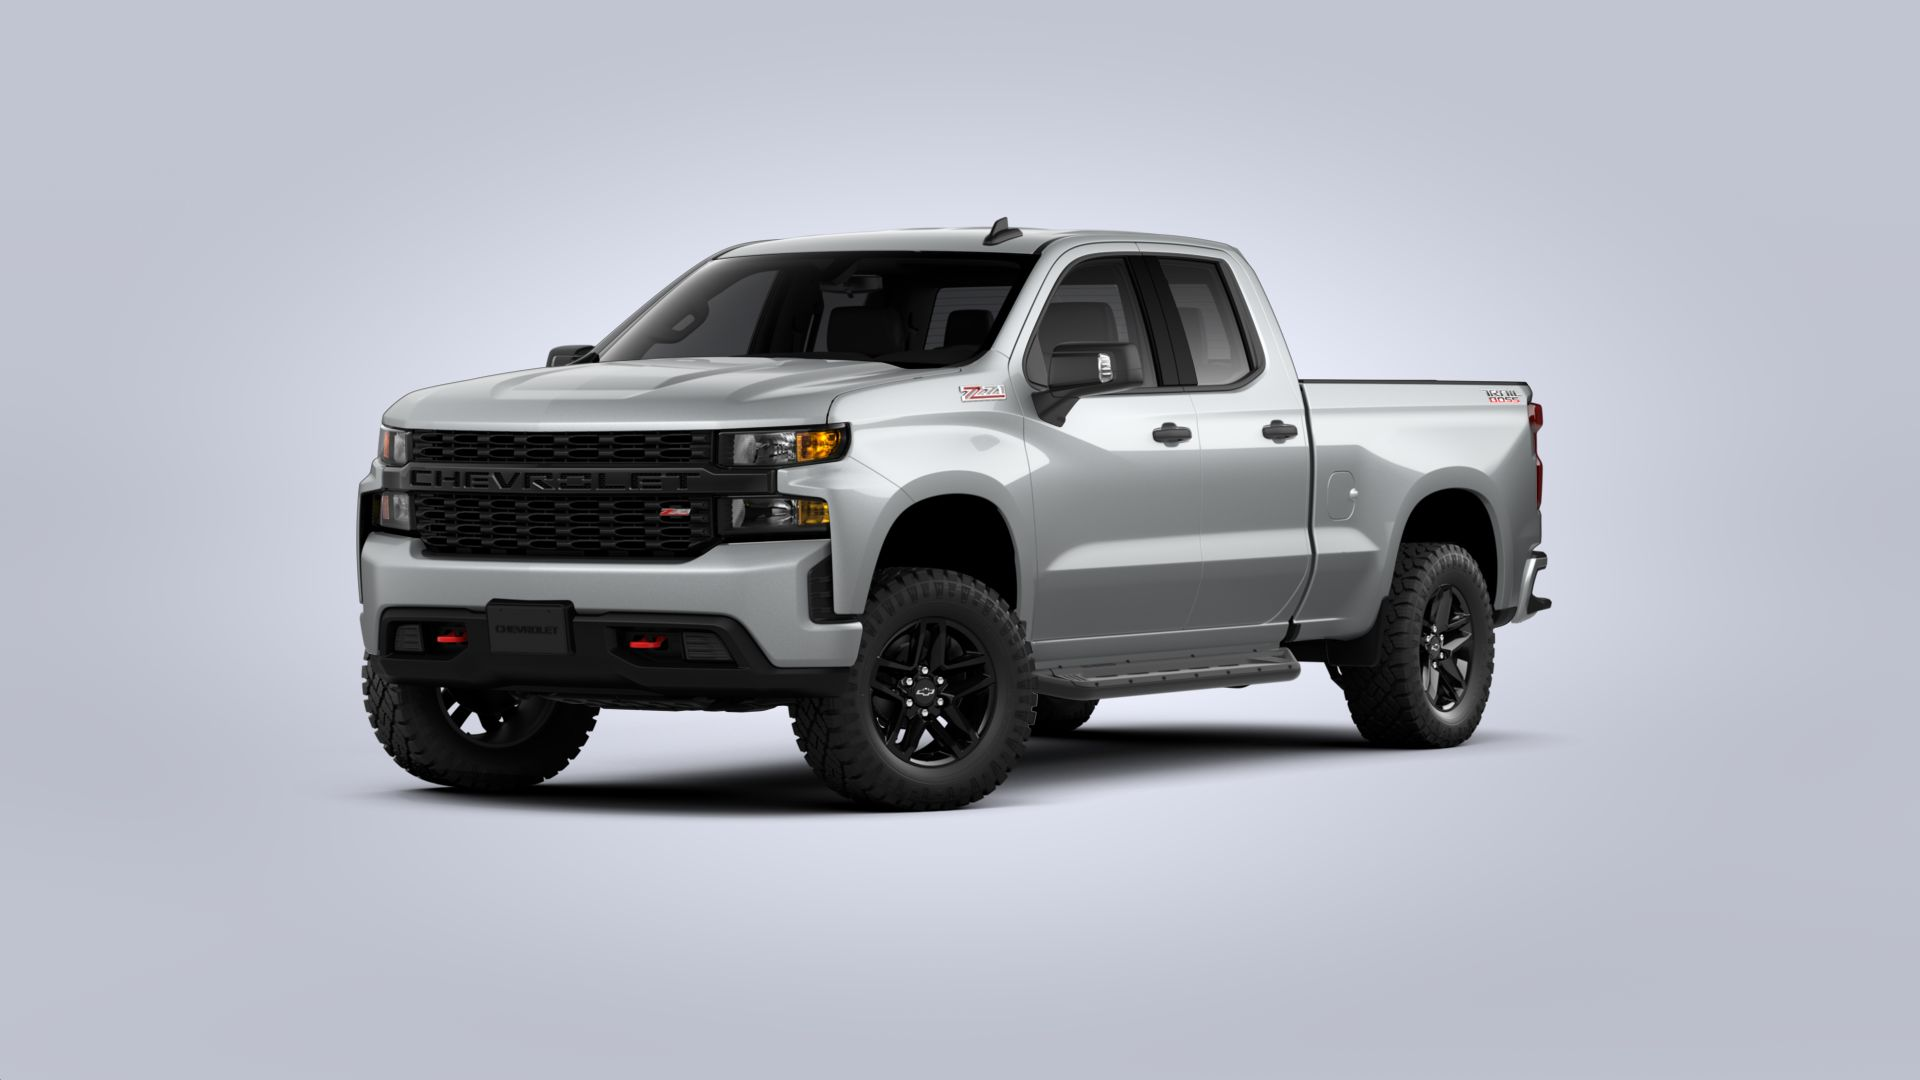 2020 Chevrolet Silverado 1500 Custom Trail Boss Truck